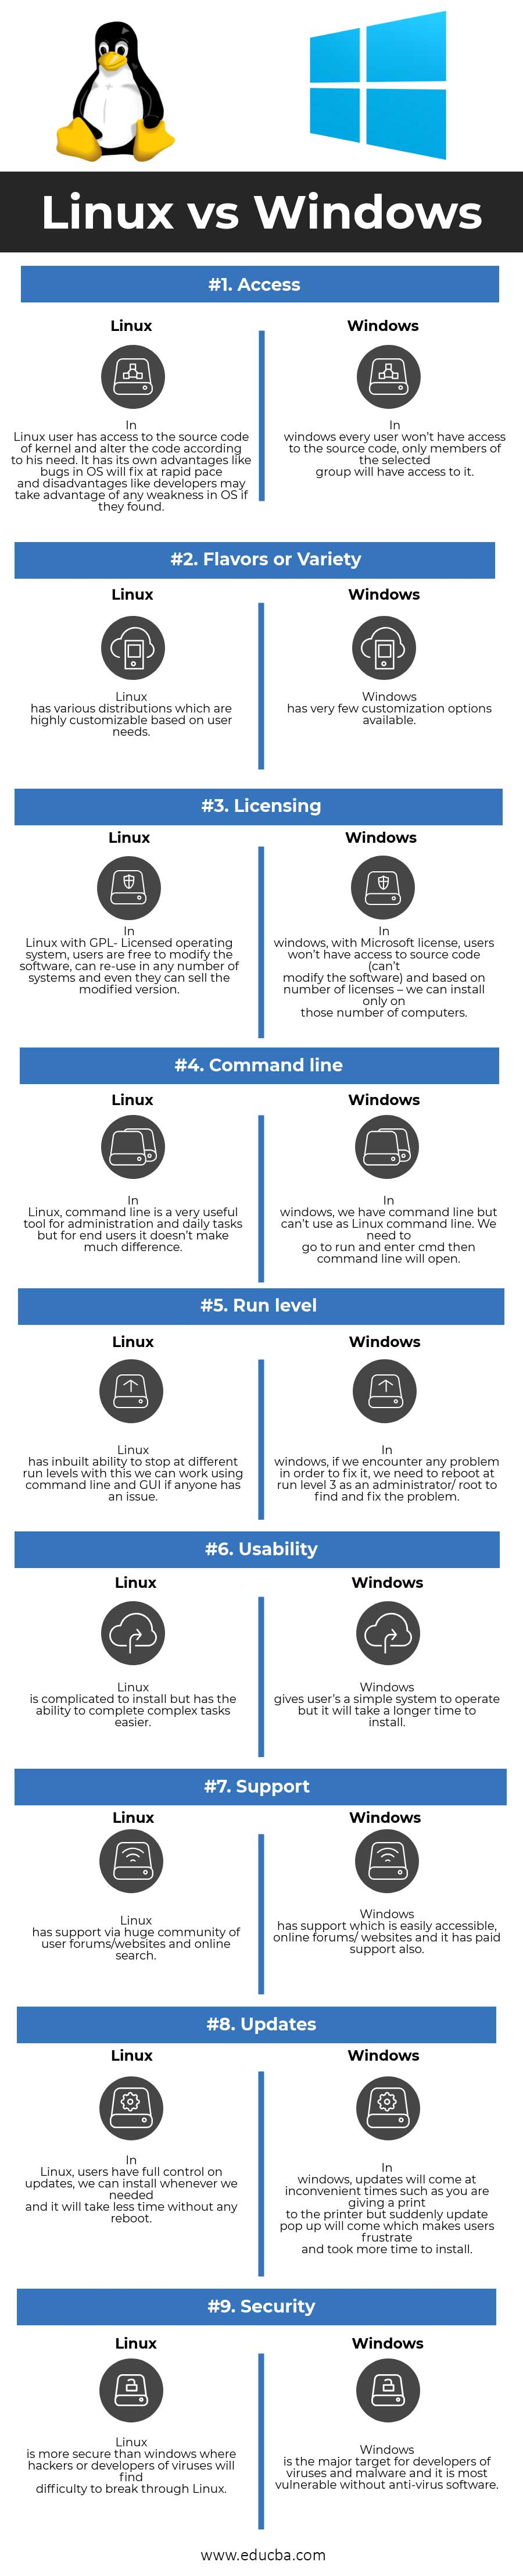 comparison between linux and windows